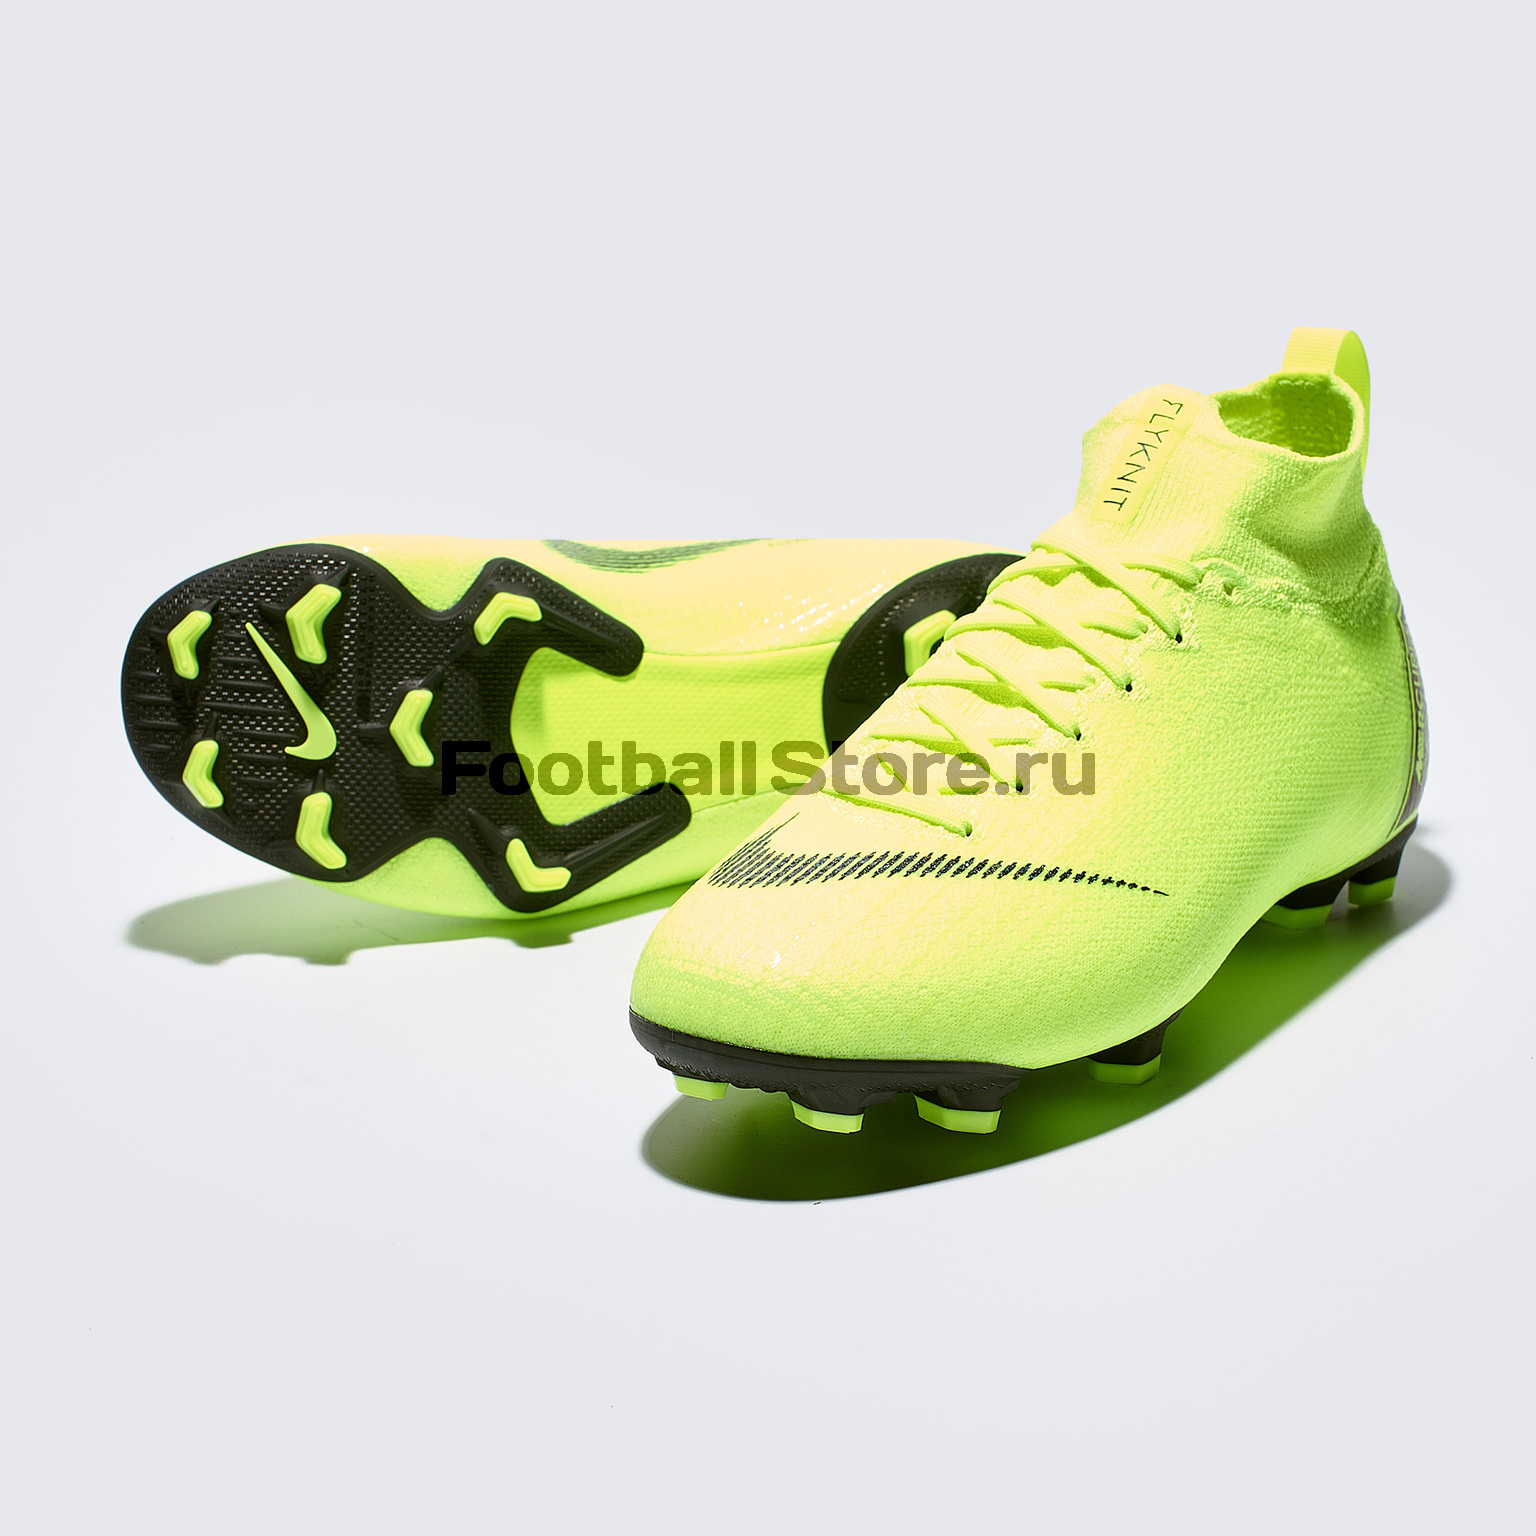 Бутсы детские Nike Superfly 6 Elite FG AH7340-701 бутсы nike superfly 6 elite sg pro ac ah7366 001